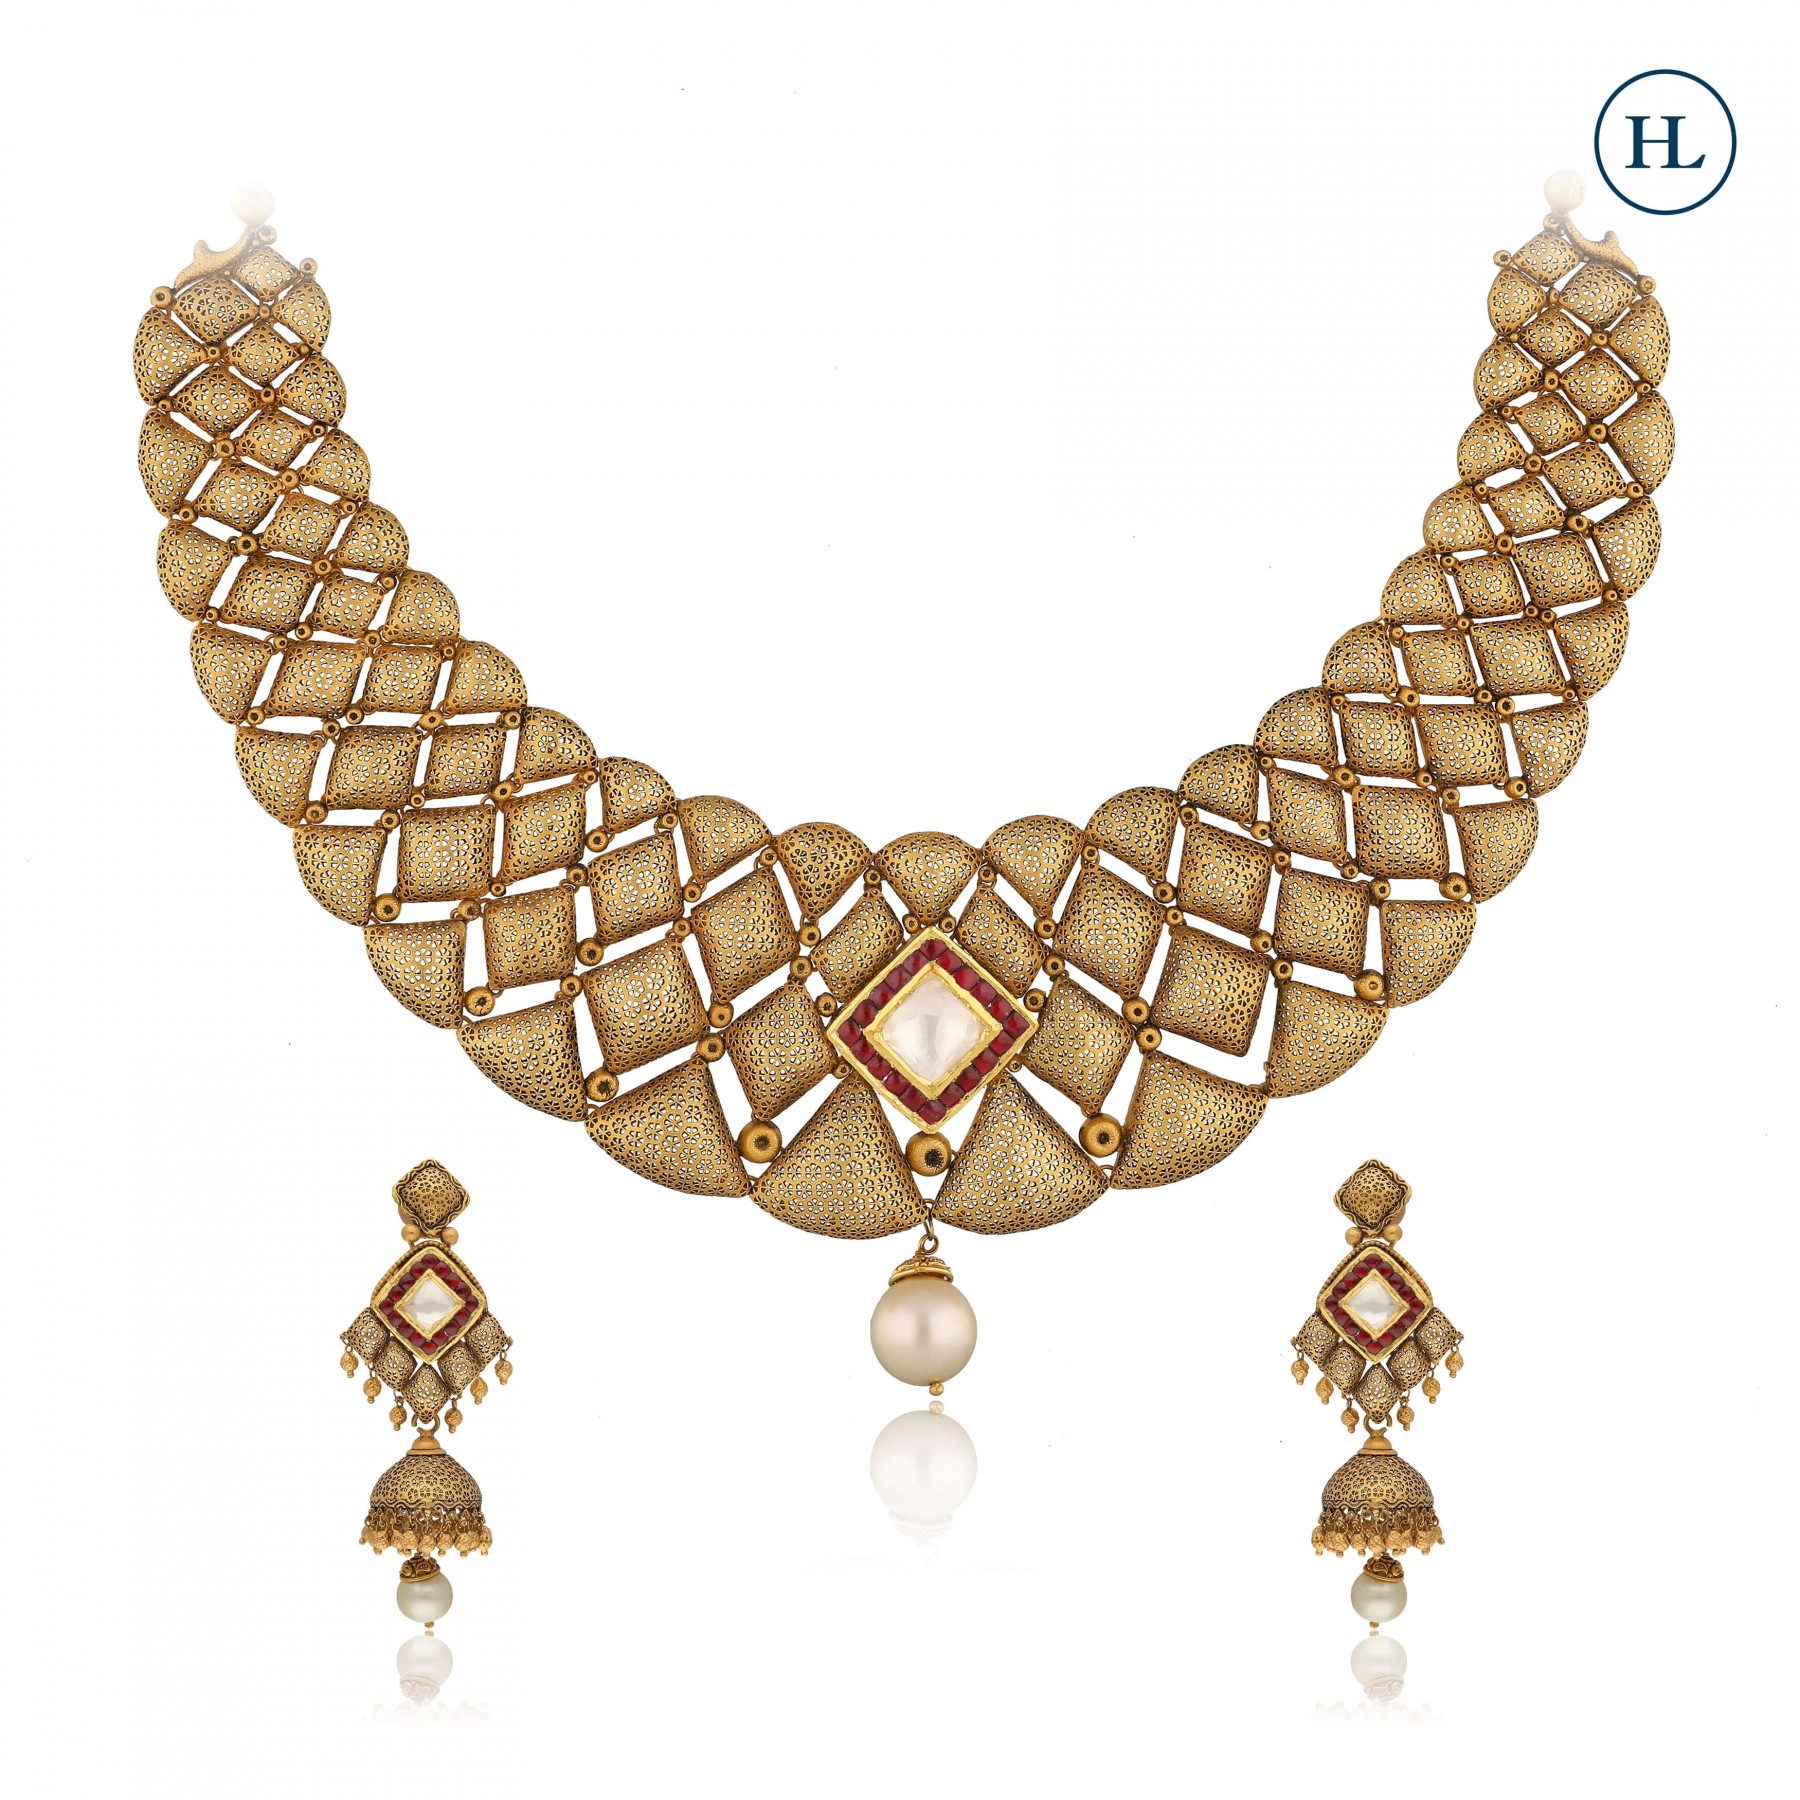 Antique-Styled Gold & Pearl Necklace Set